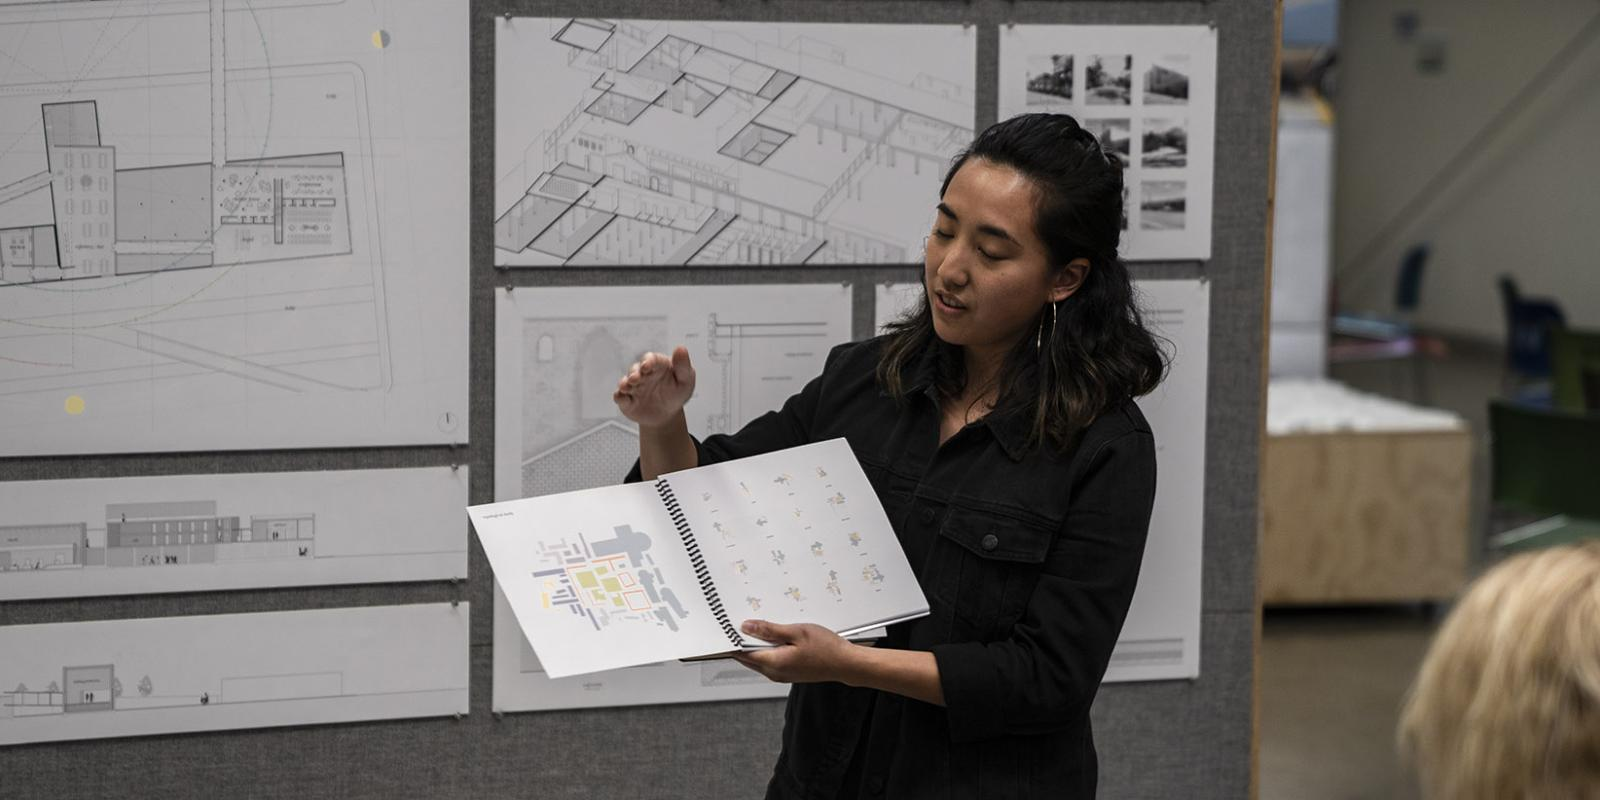 Mariana Cecilia Uy final project presentation to professionals. (George Proctor)